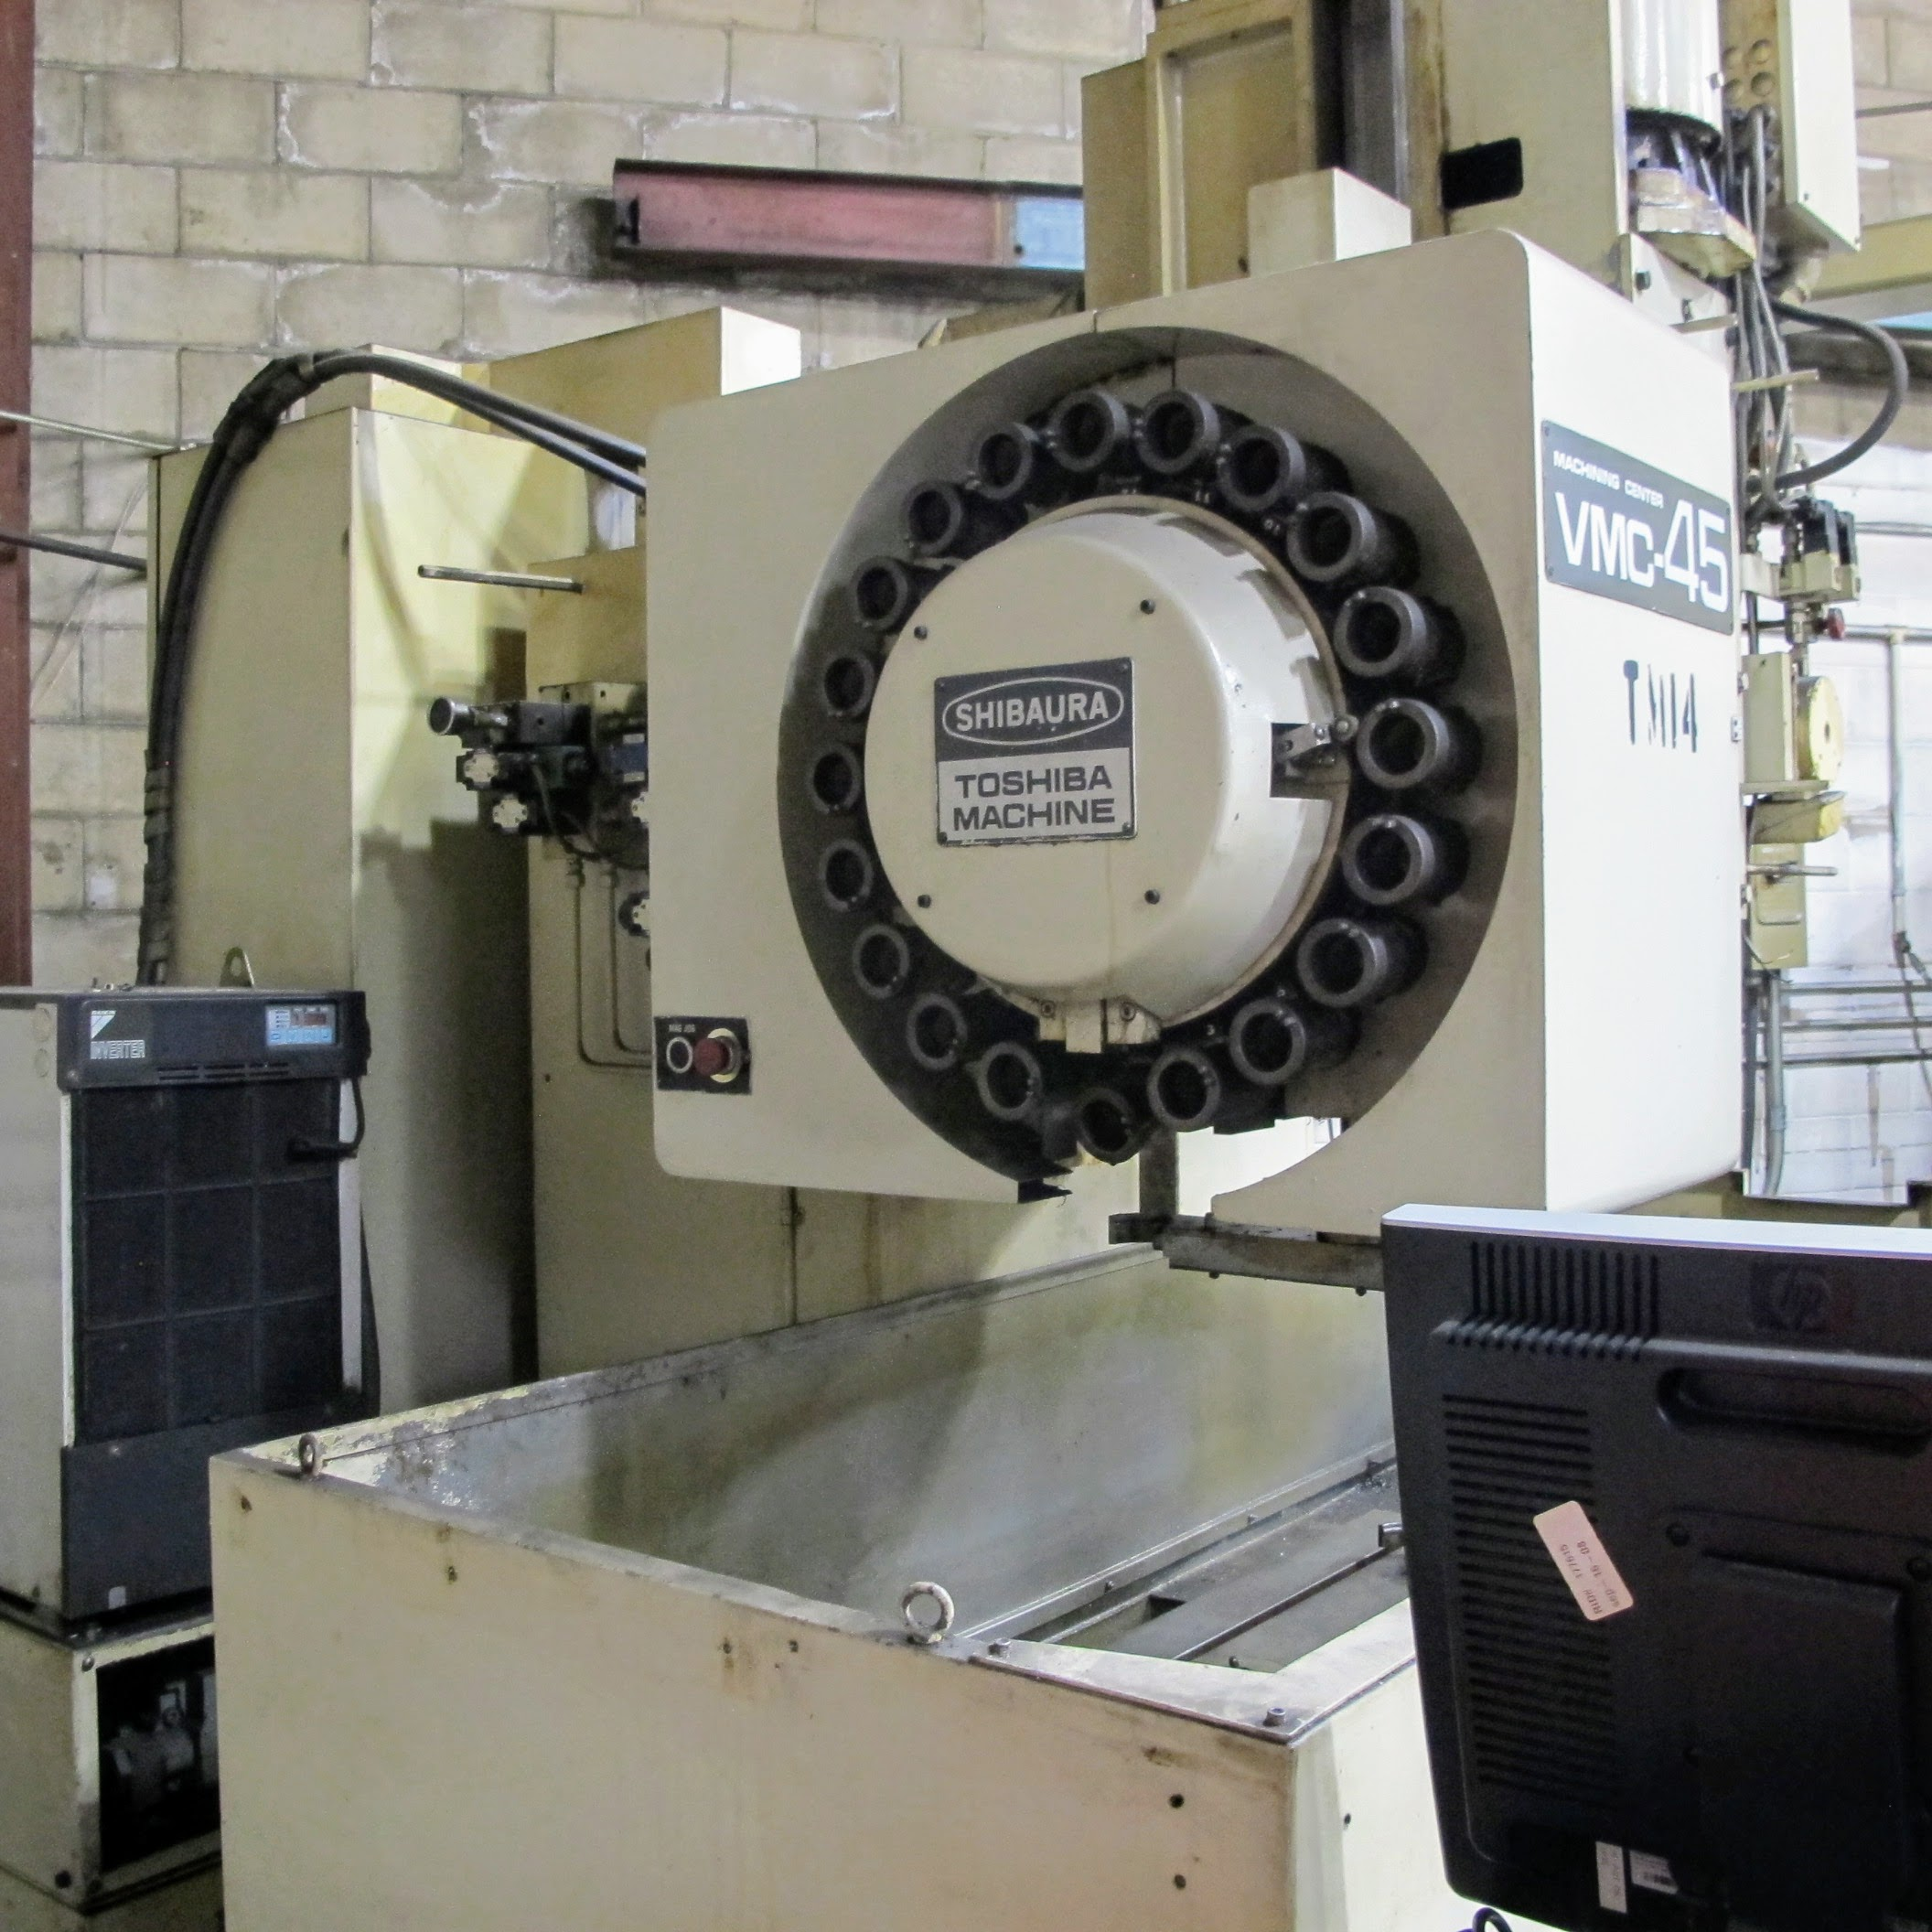 """SHIBAURA VMC-45 CNC VERTICAL MACHINING CENTER, 18"""" X 40"""" TABLE, TOSNUC CNC CONTROLS, 20 ATC, COOLING - Image 3 of 6"""